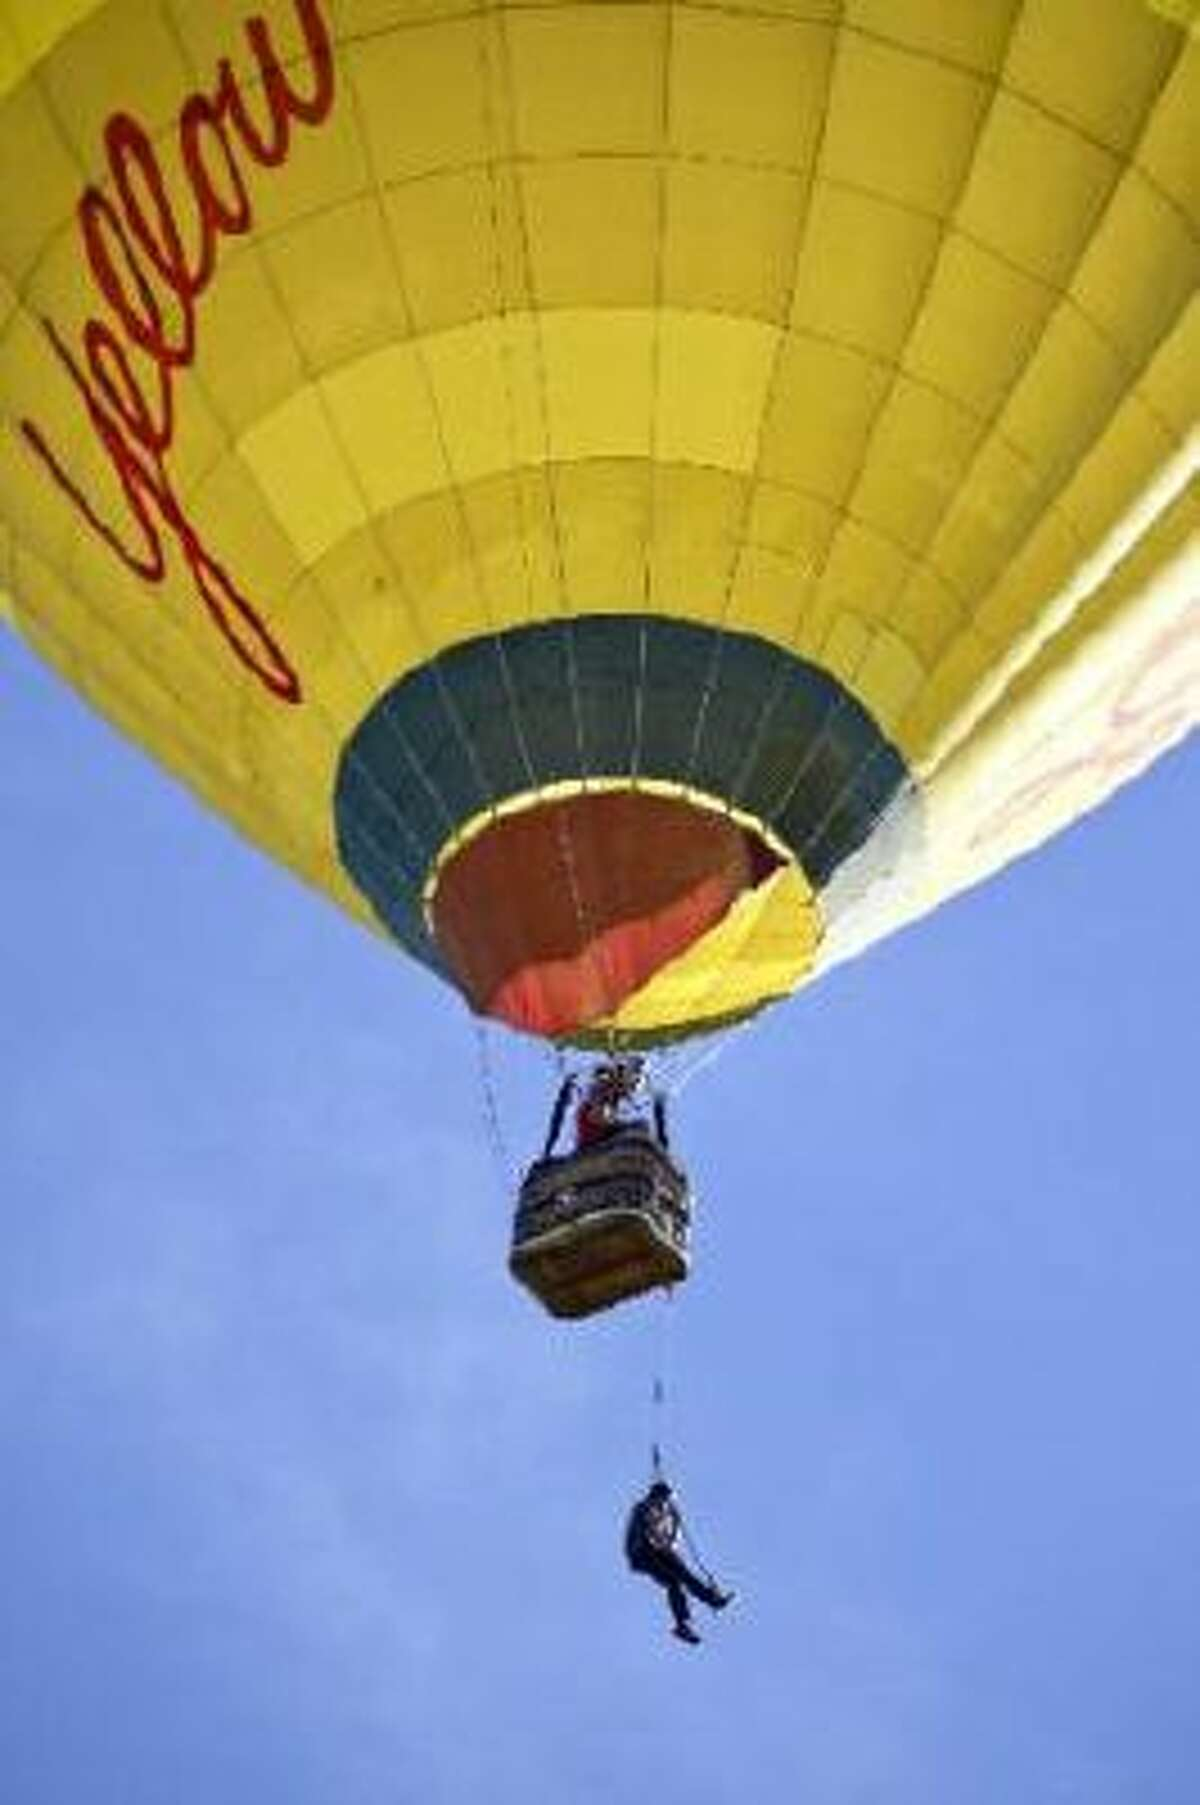 20131022_BALLOON_3269.jpg Dan Vinson hangs from a hot air balloon while filming a video to promote a Kickstarter campaign for Monkii Bars, portable fitness equipment, Tuesday, Oct. 22, 2013, over Longmont. (Matthew Jonas/Times-Call)